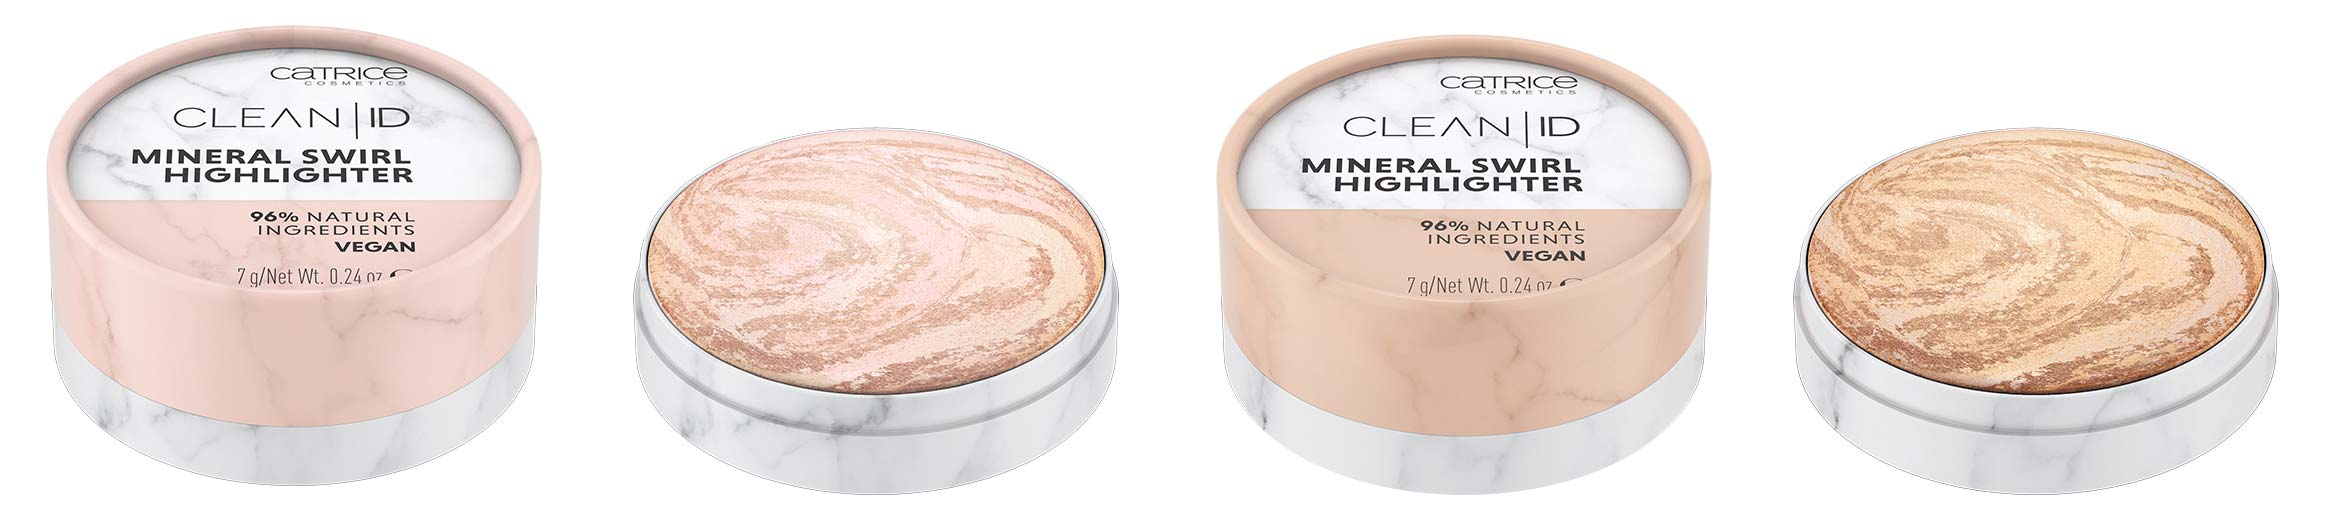 catrice-clean-id-mineral-swirl-highlighter